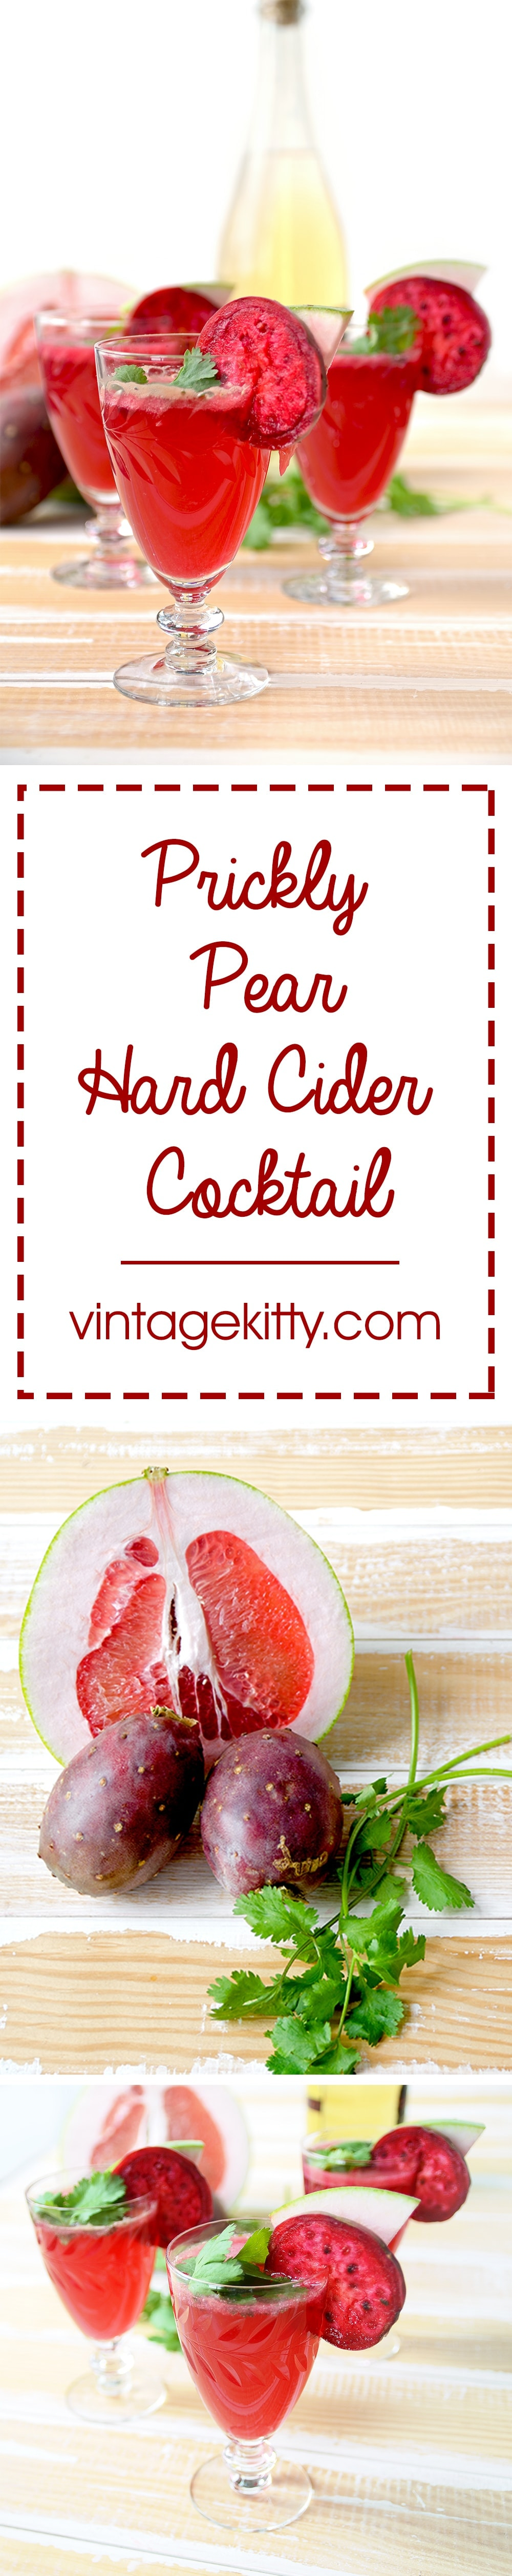 Refreshing, fruity and unique, this Prickly Pear Hard Cider Cocktail with Cilantro and Pomelo tastes as good as it looks.   vintagekitty.com